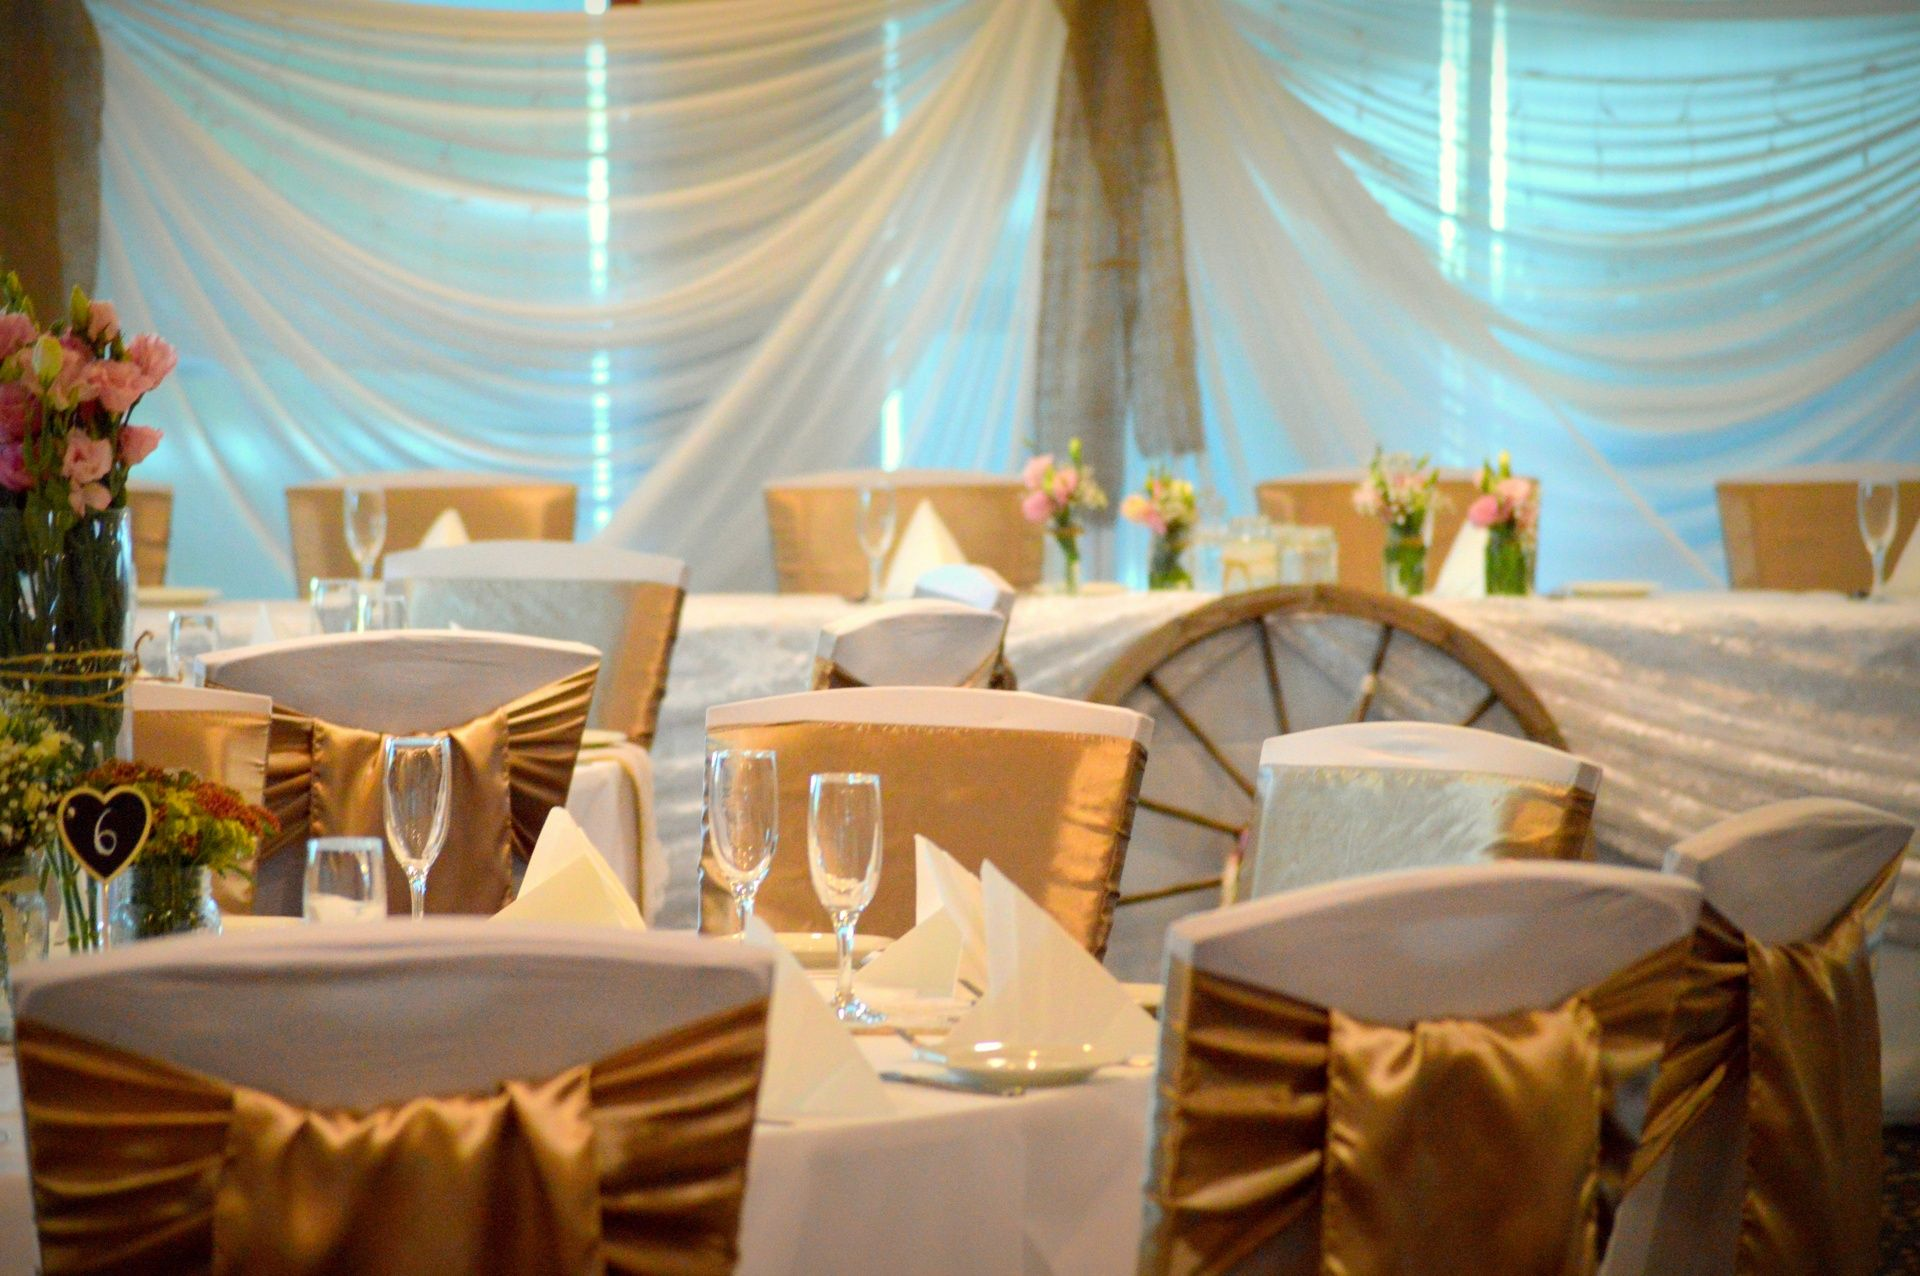 Wedding Decorations Hire Newcastle Stage Wedding Decoration Hire And Set Up Service Creat Romantic Wedding Decor Custom Wedding Decor Wedding Decorations